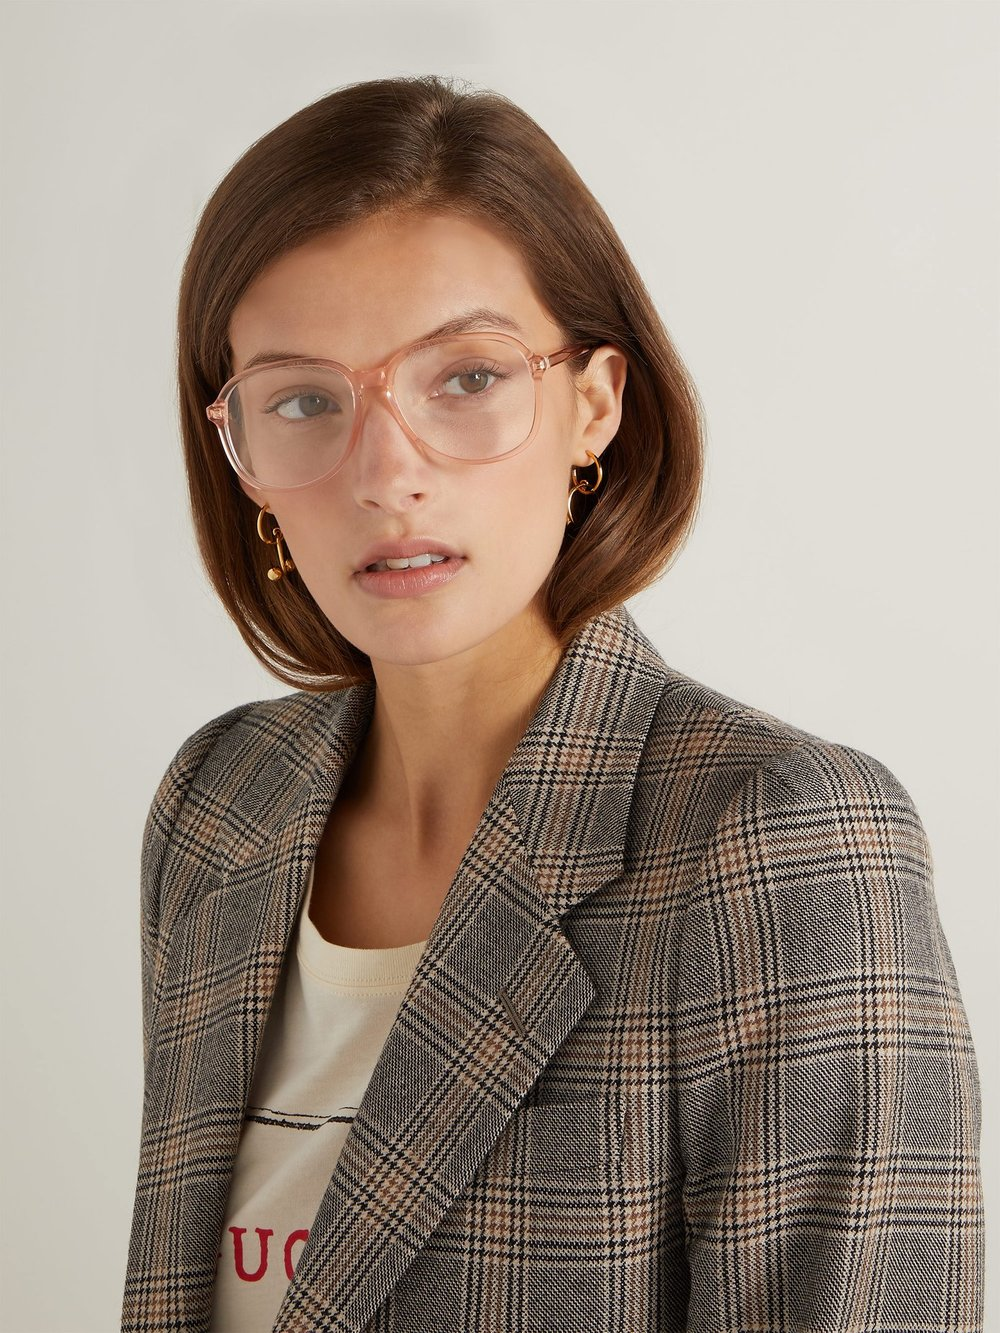 Square Frame Acetate Glasses by Gucci $305